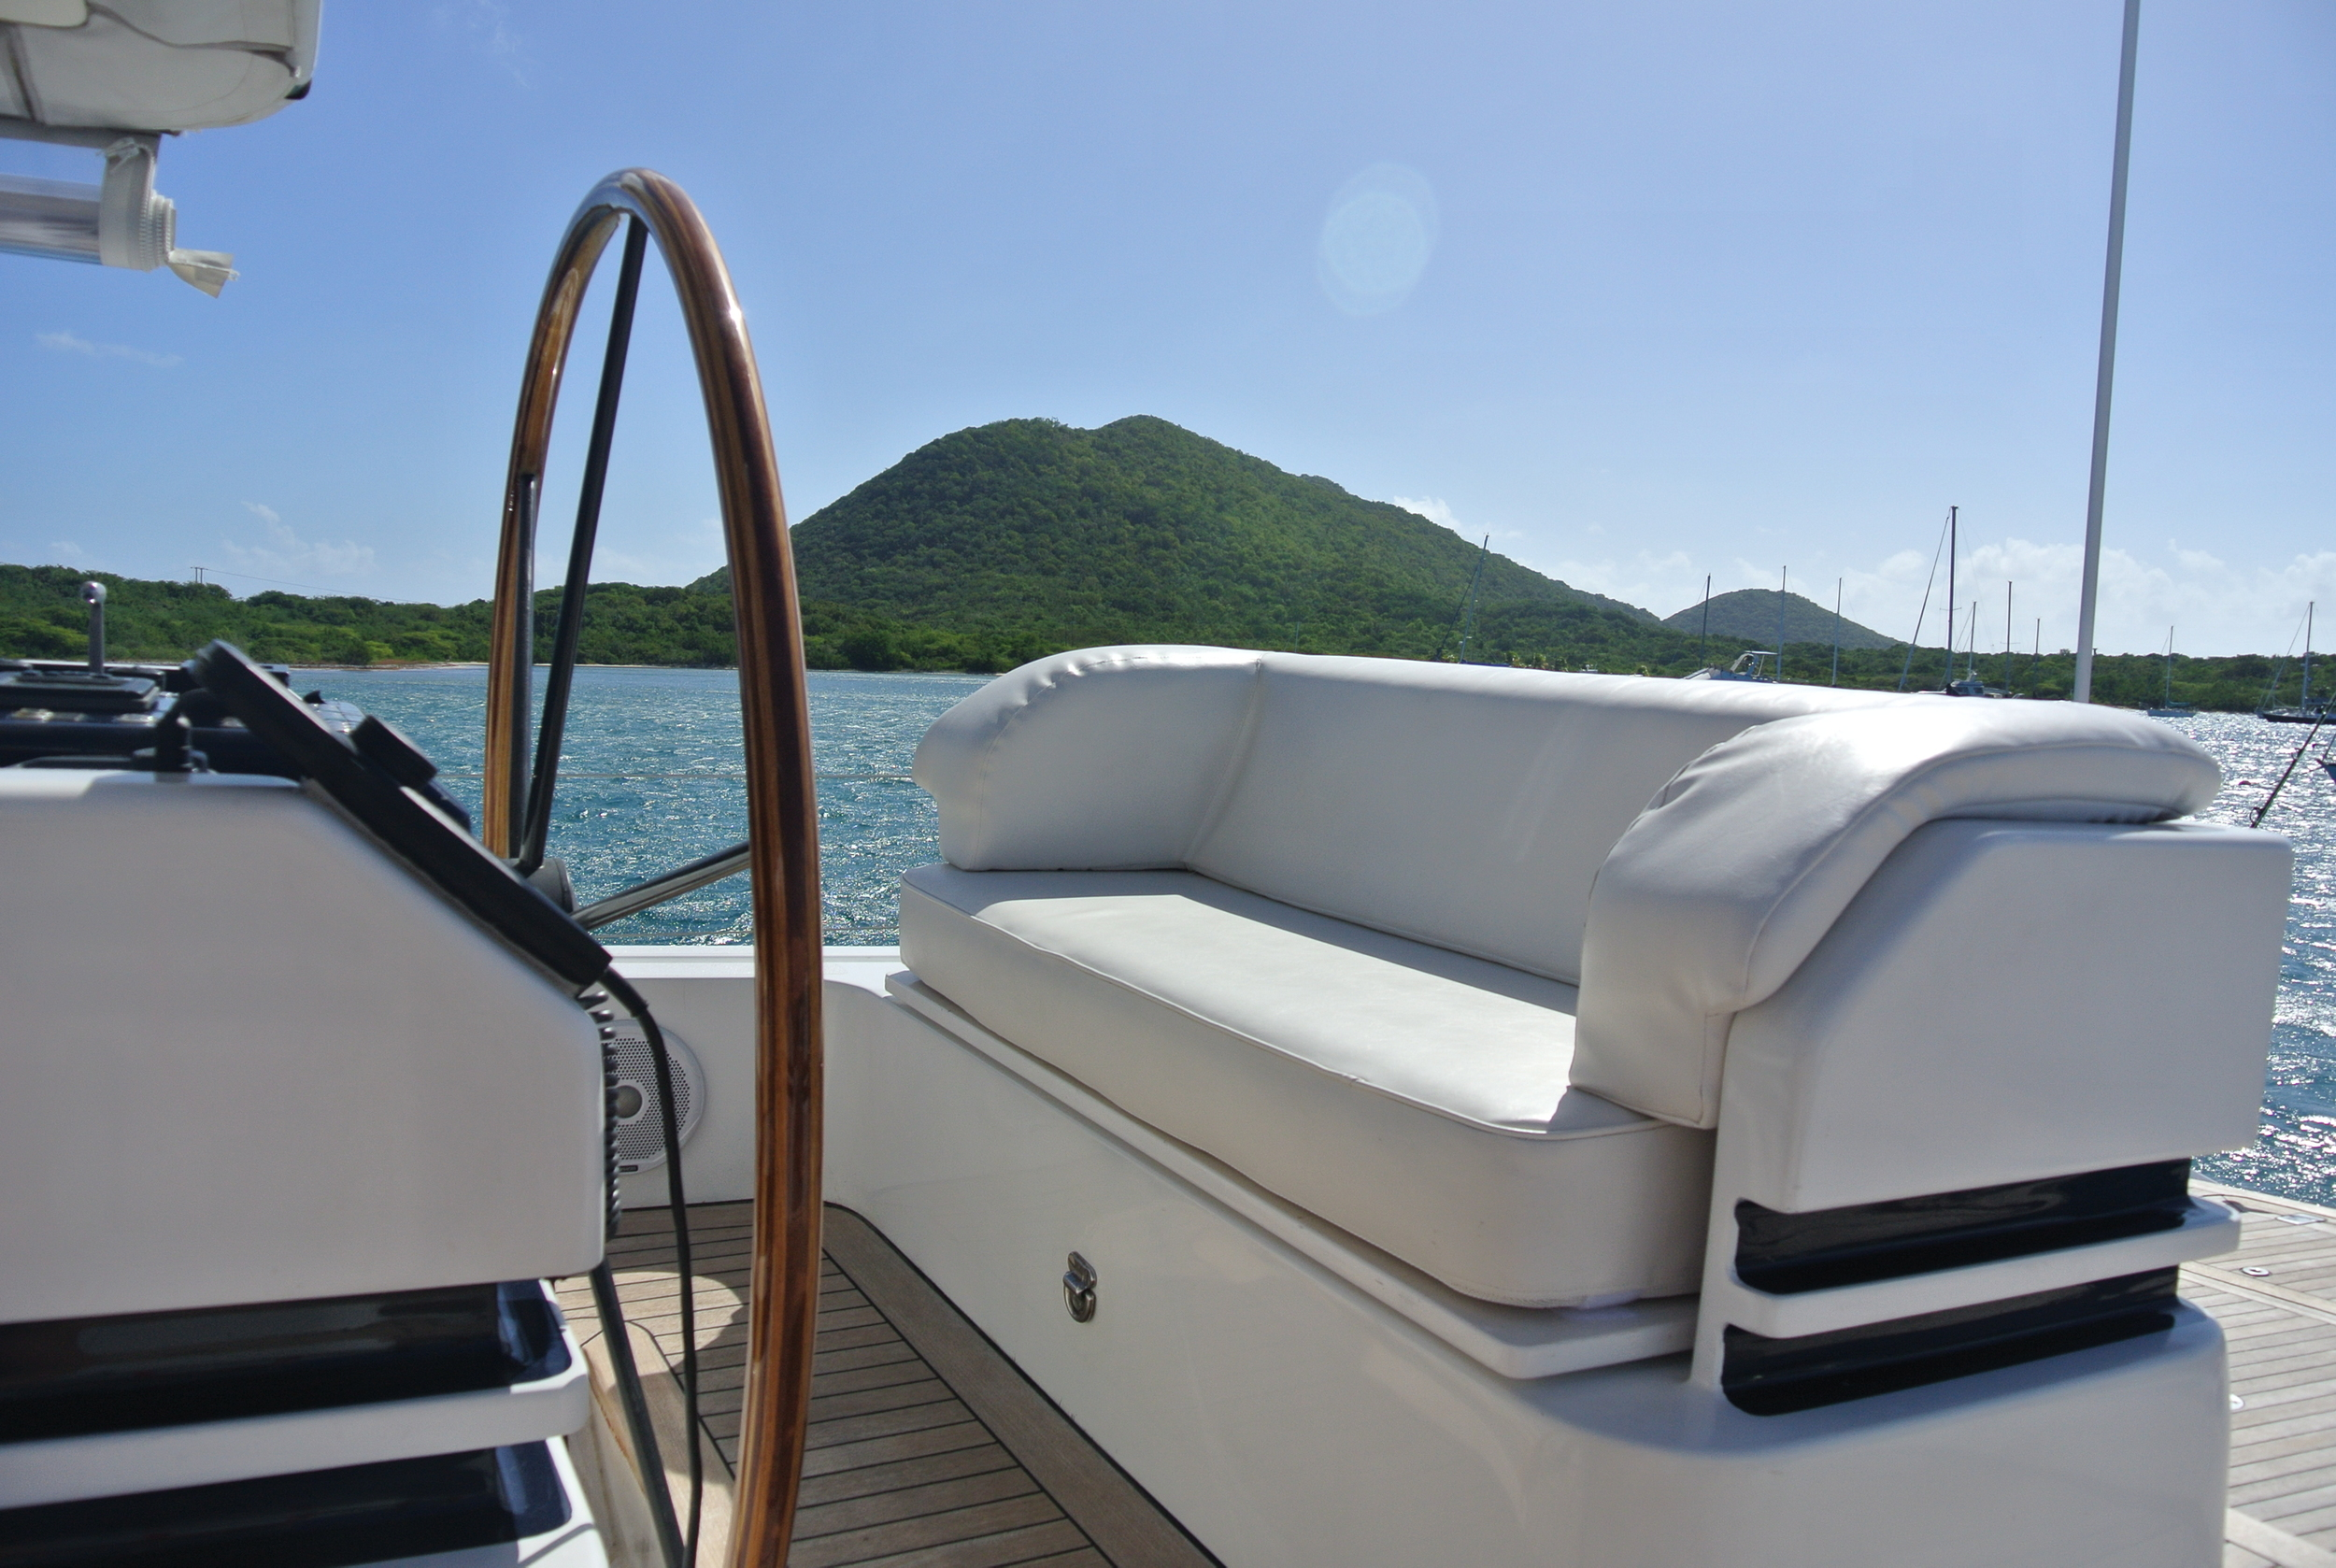 SeaQuell Yacht Upholstery Boat Cushions Newport Rhode Island by Maloney Interiors.JPG